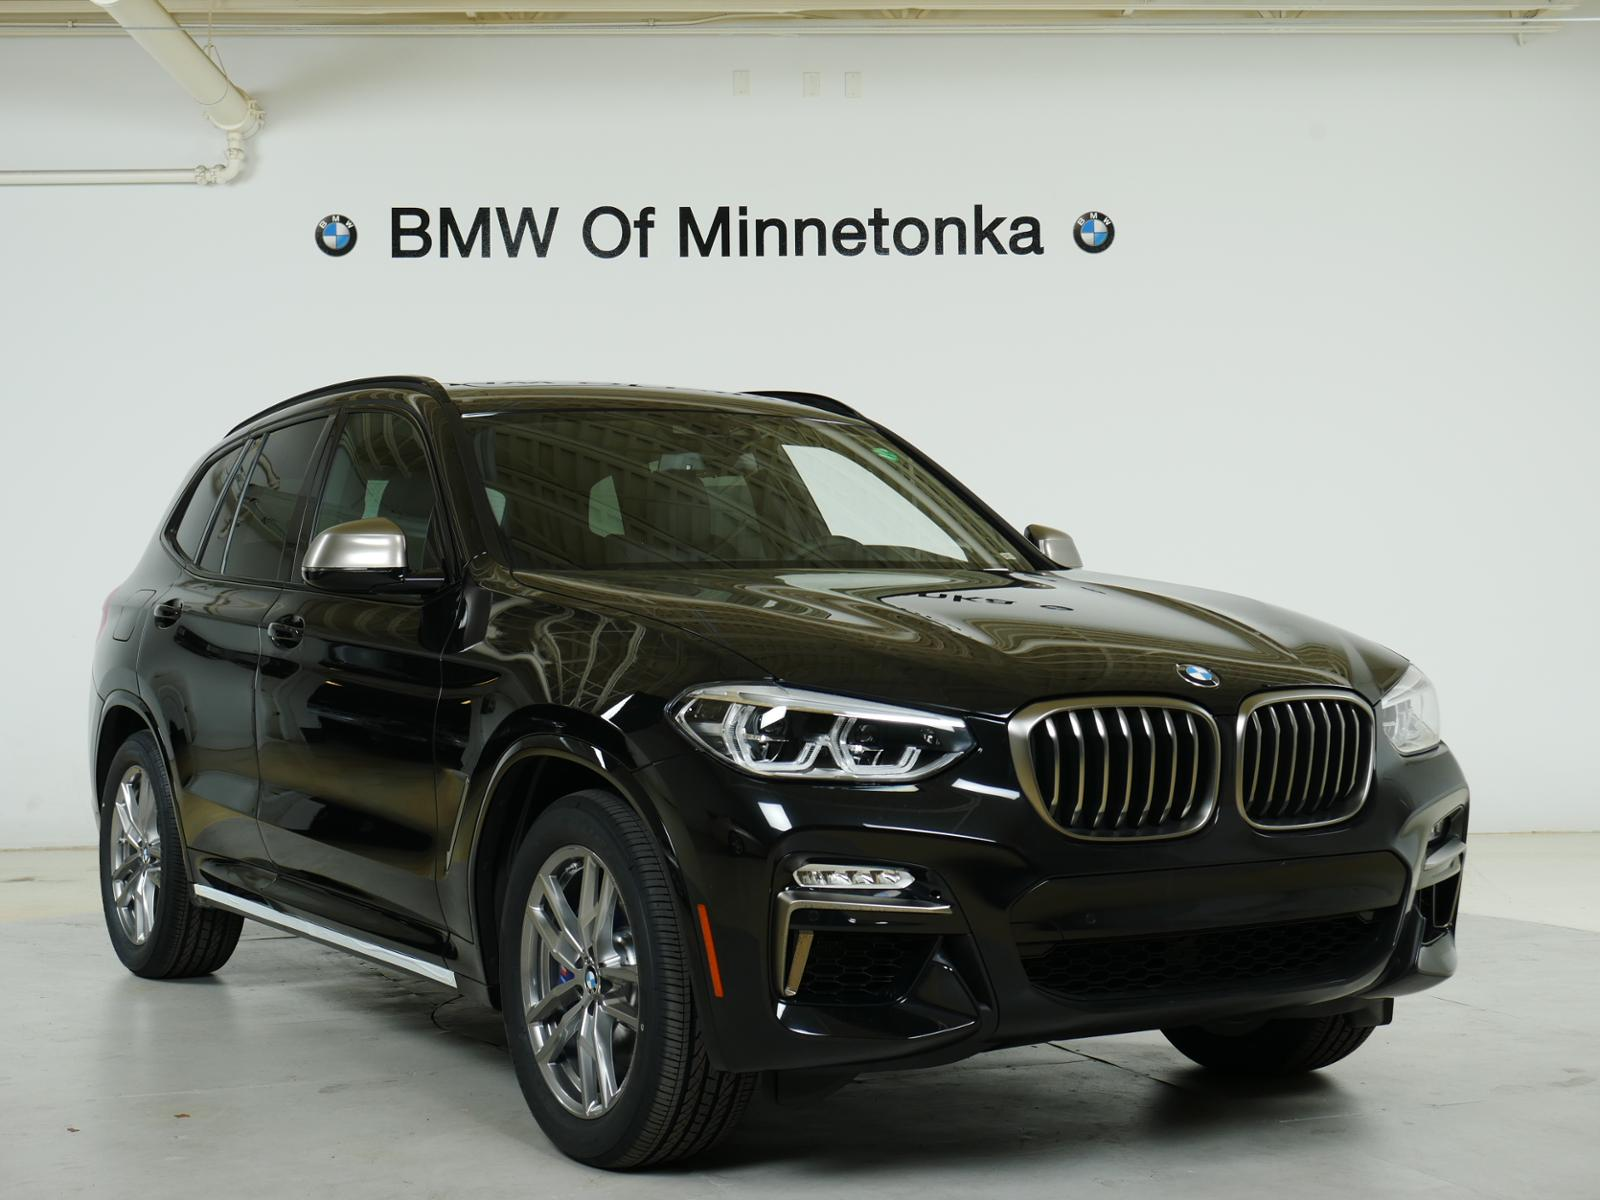 Bmw Pre Owned >> Pre Owned 2019 Bmw X3 Suv In Minnetonka B4933 Bmw Of Minnetonka